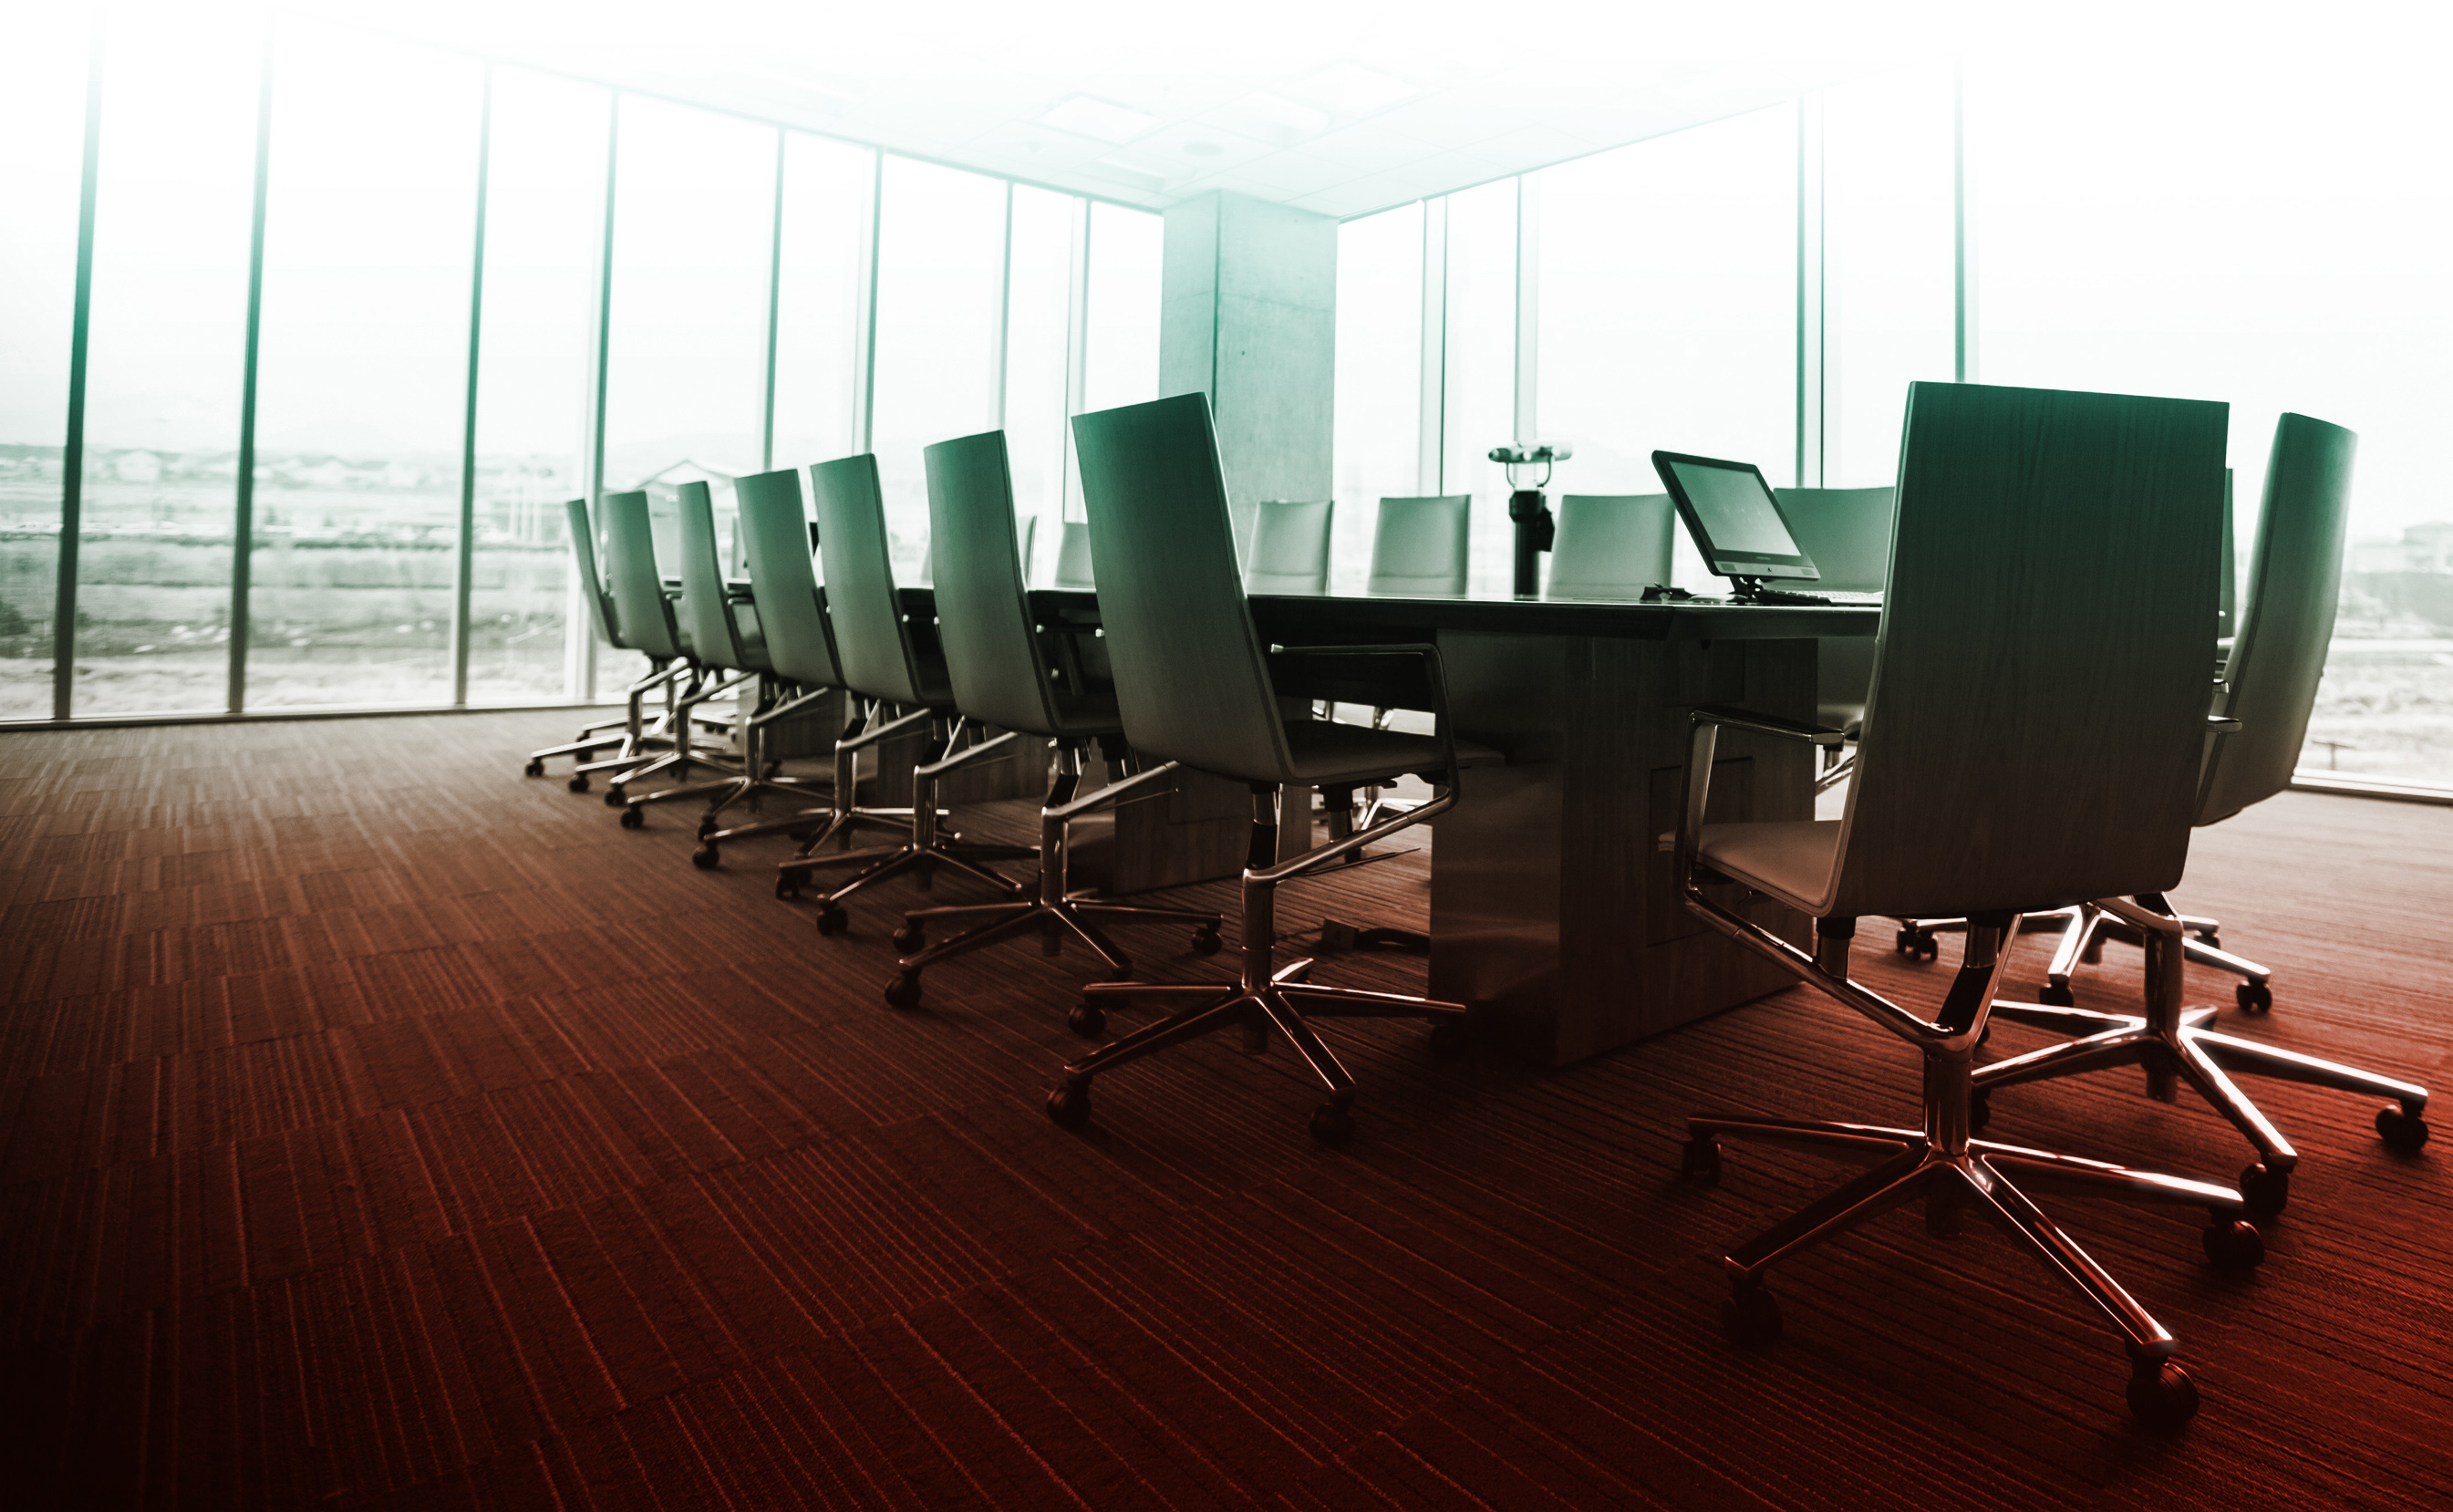 Empty Meeting Room, new, modern, nopeople, office, HQ Photo